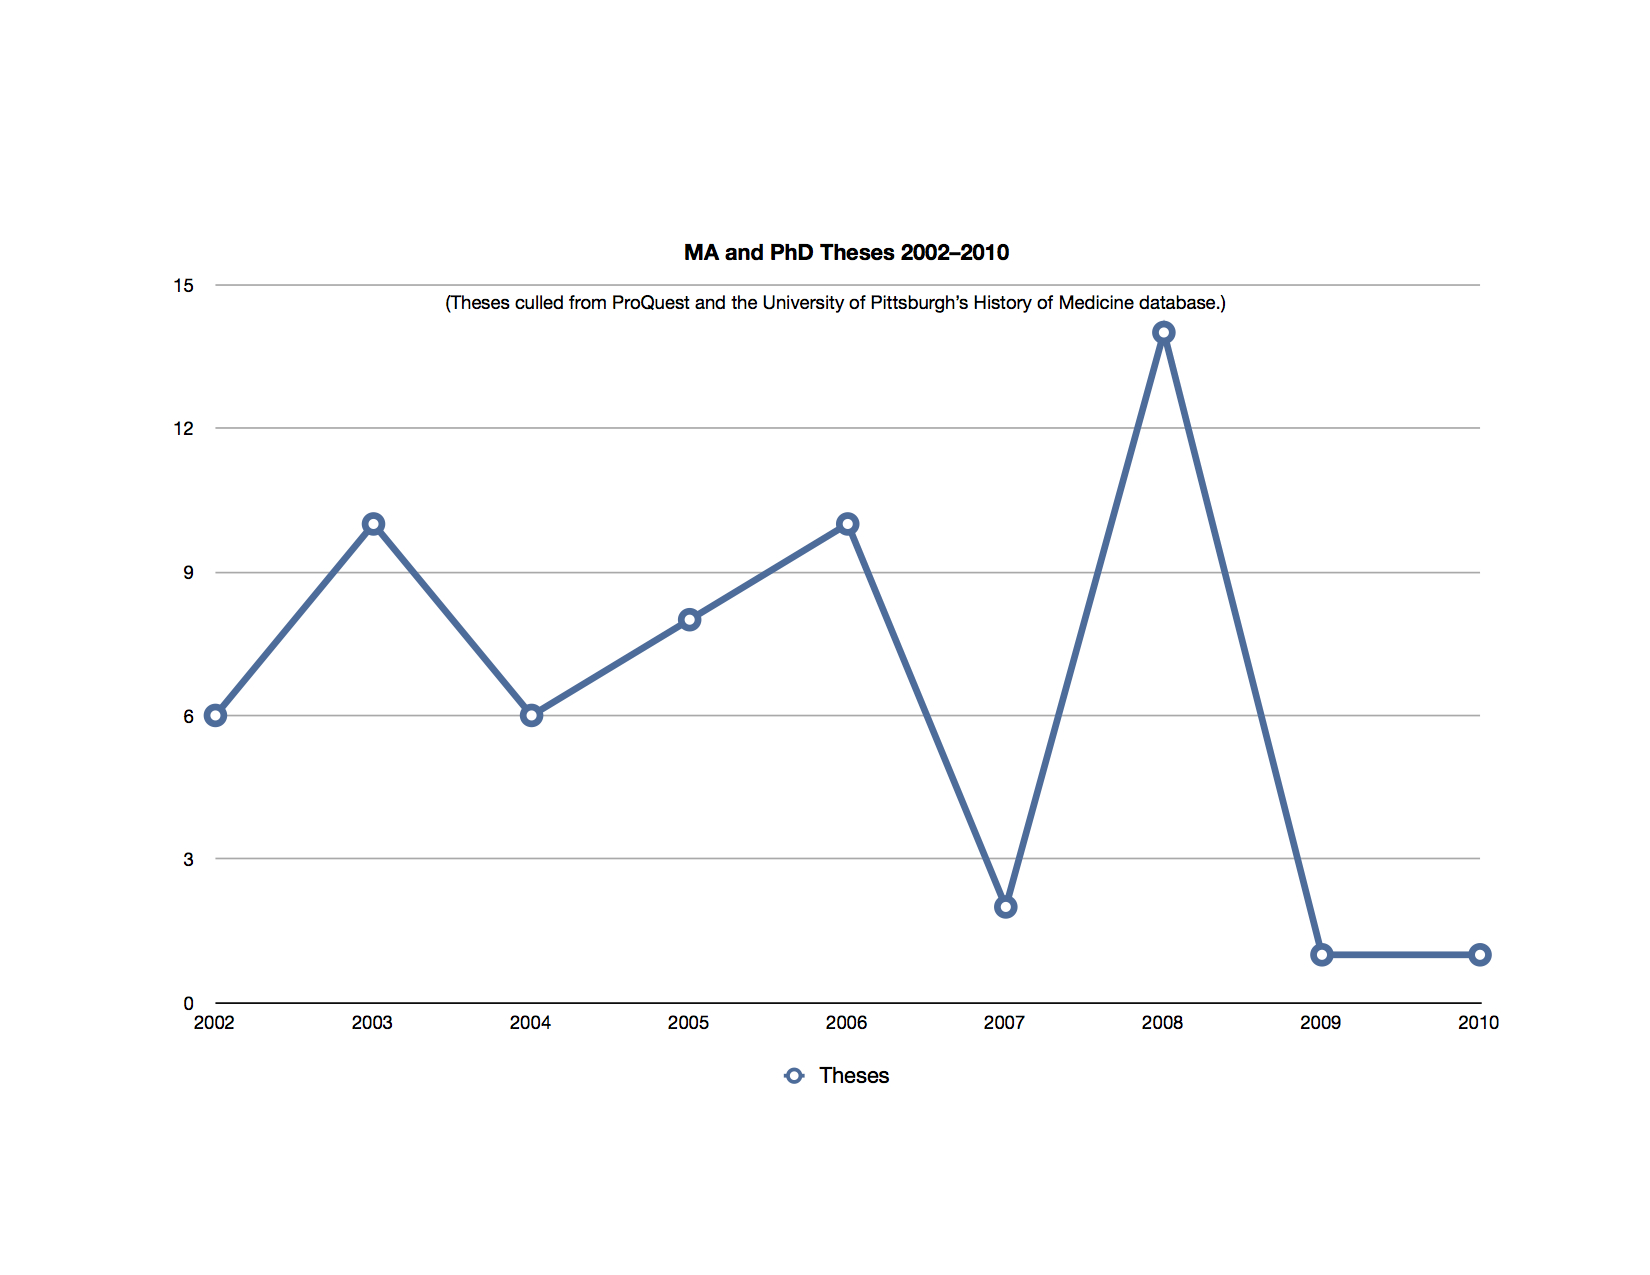 A totally useless graph showing the number of theses completed each year from 2002-2010.